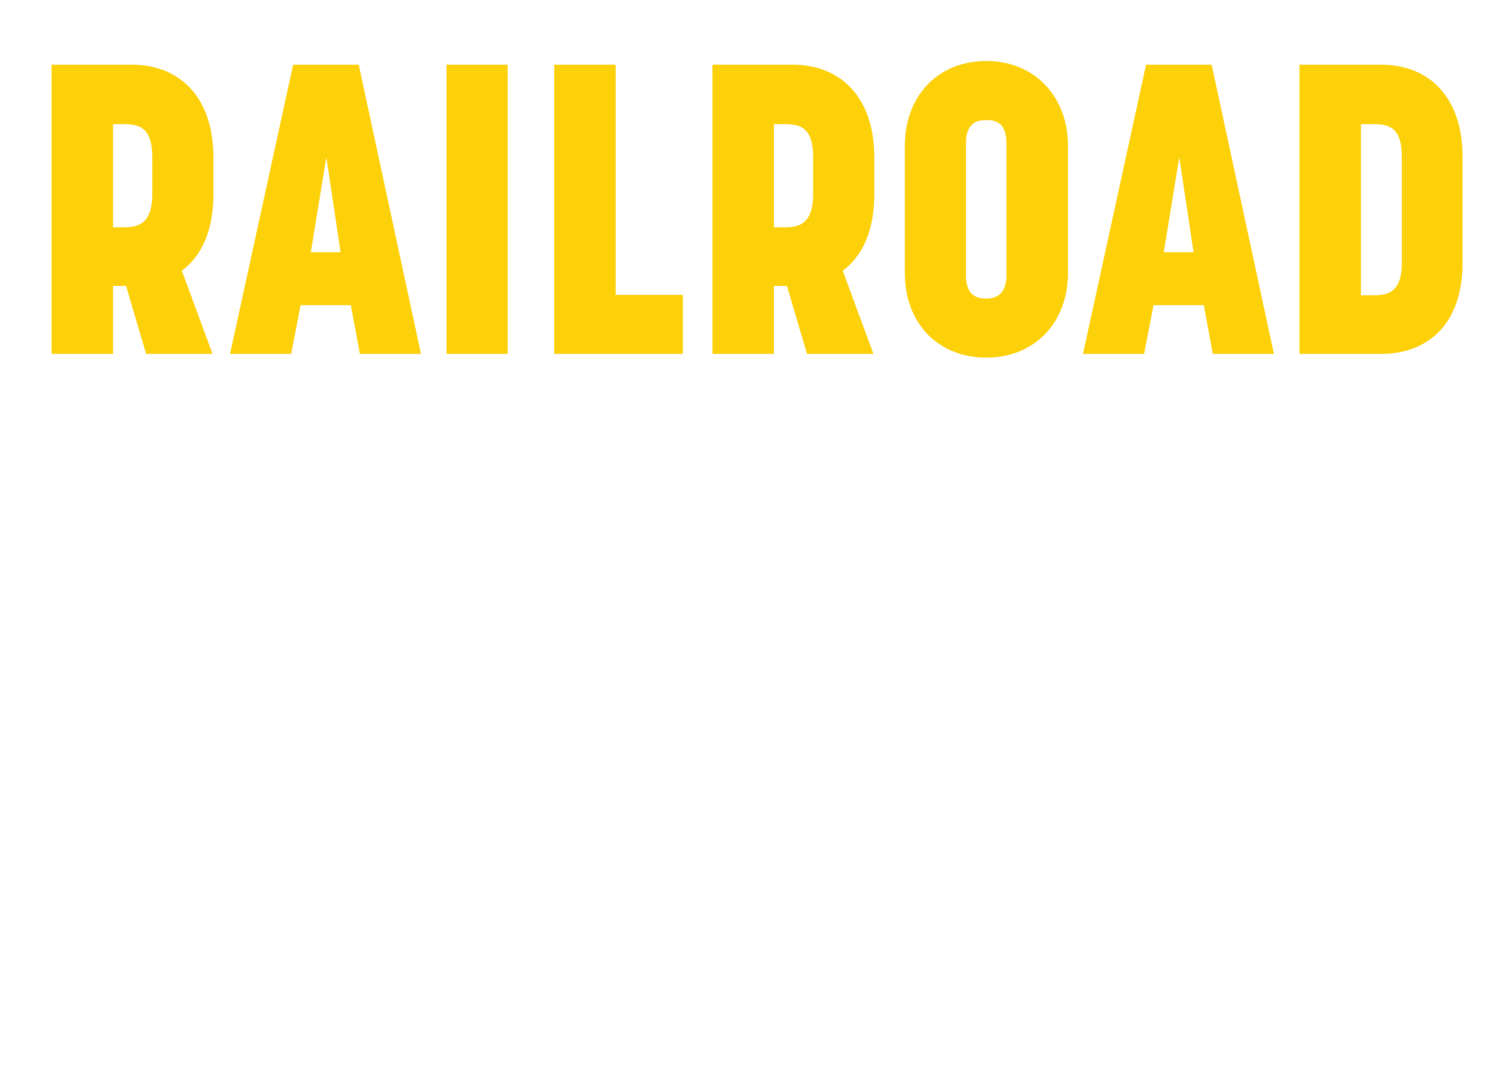 Railroad Museum [for a day]